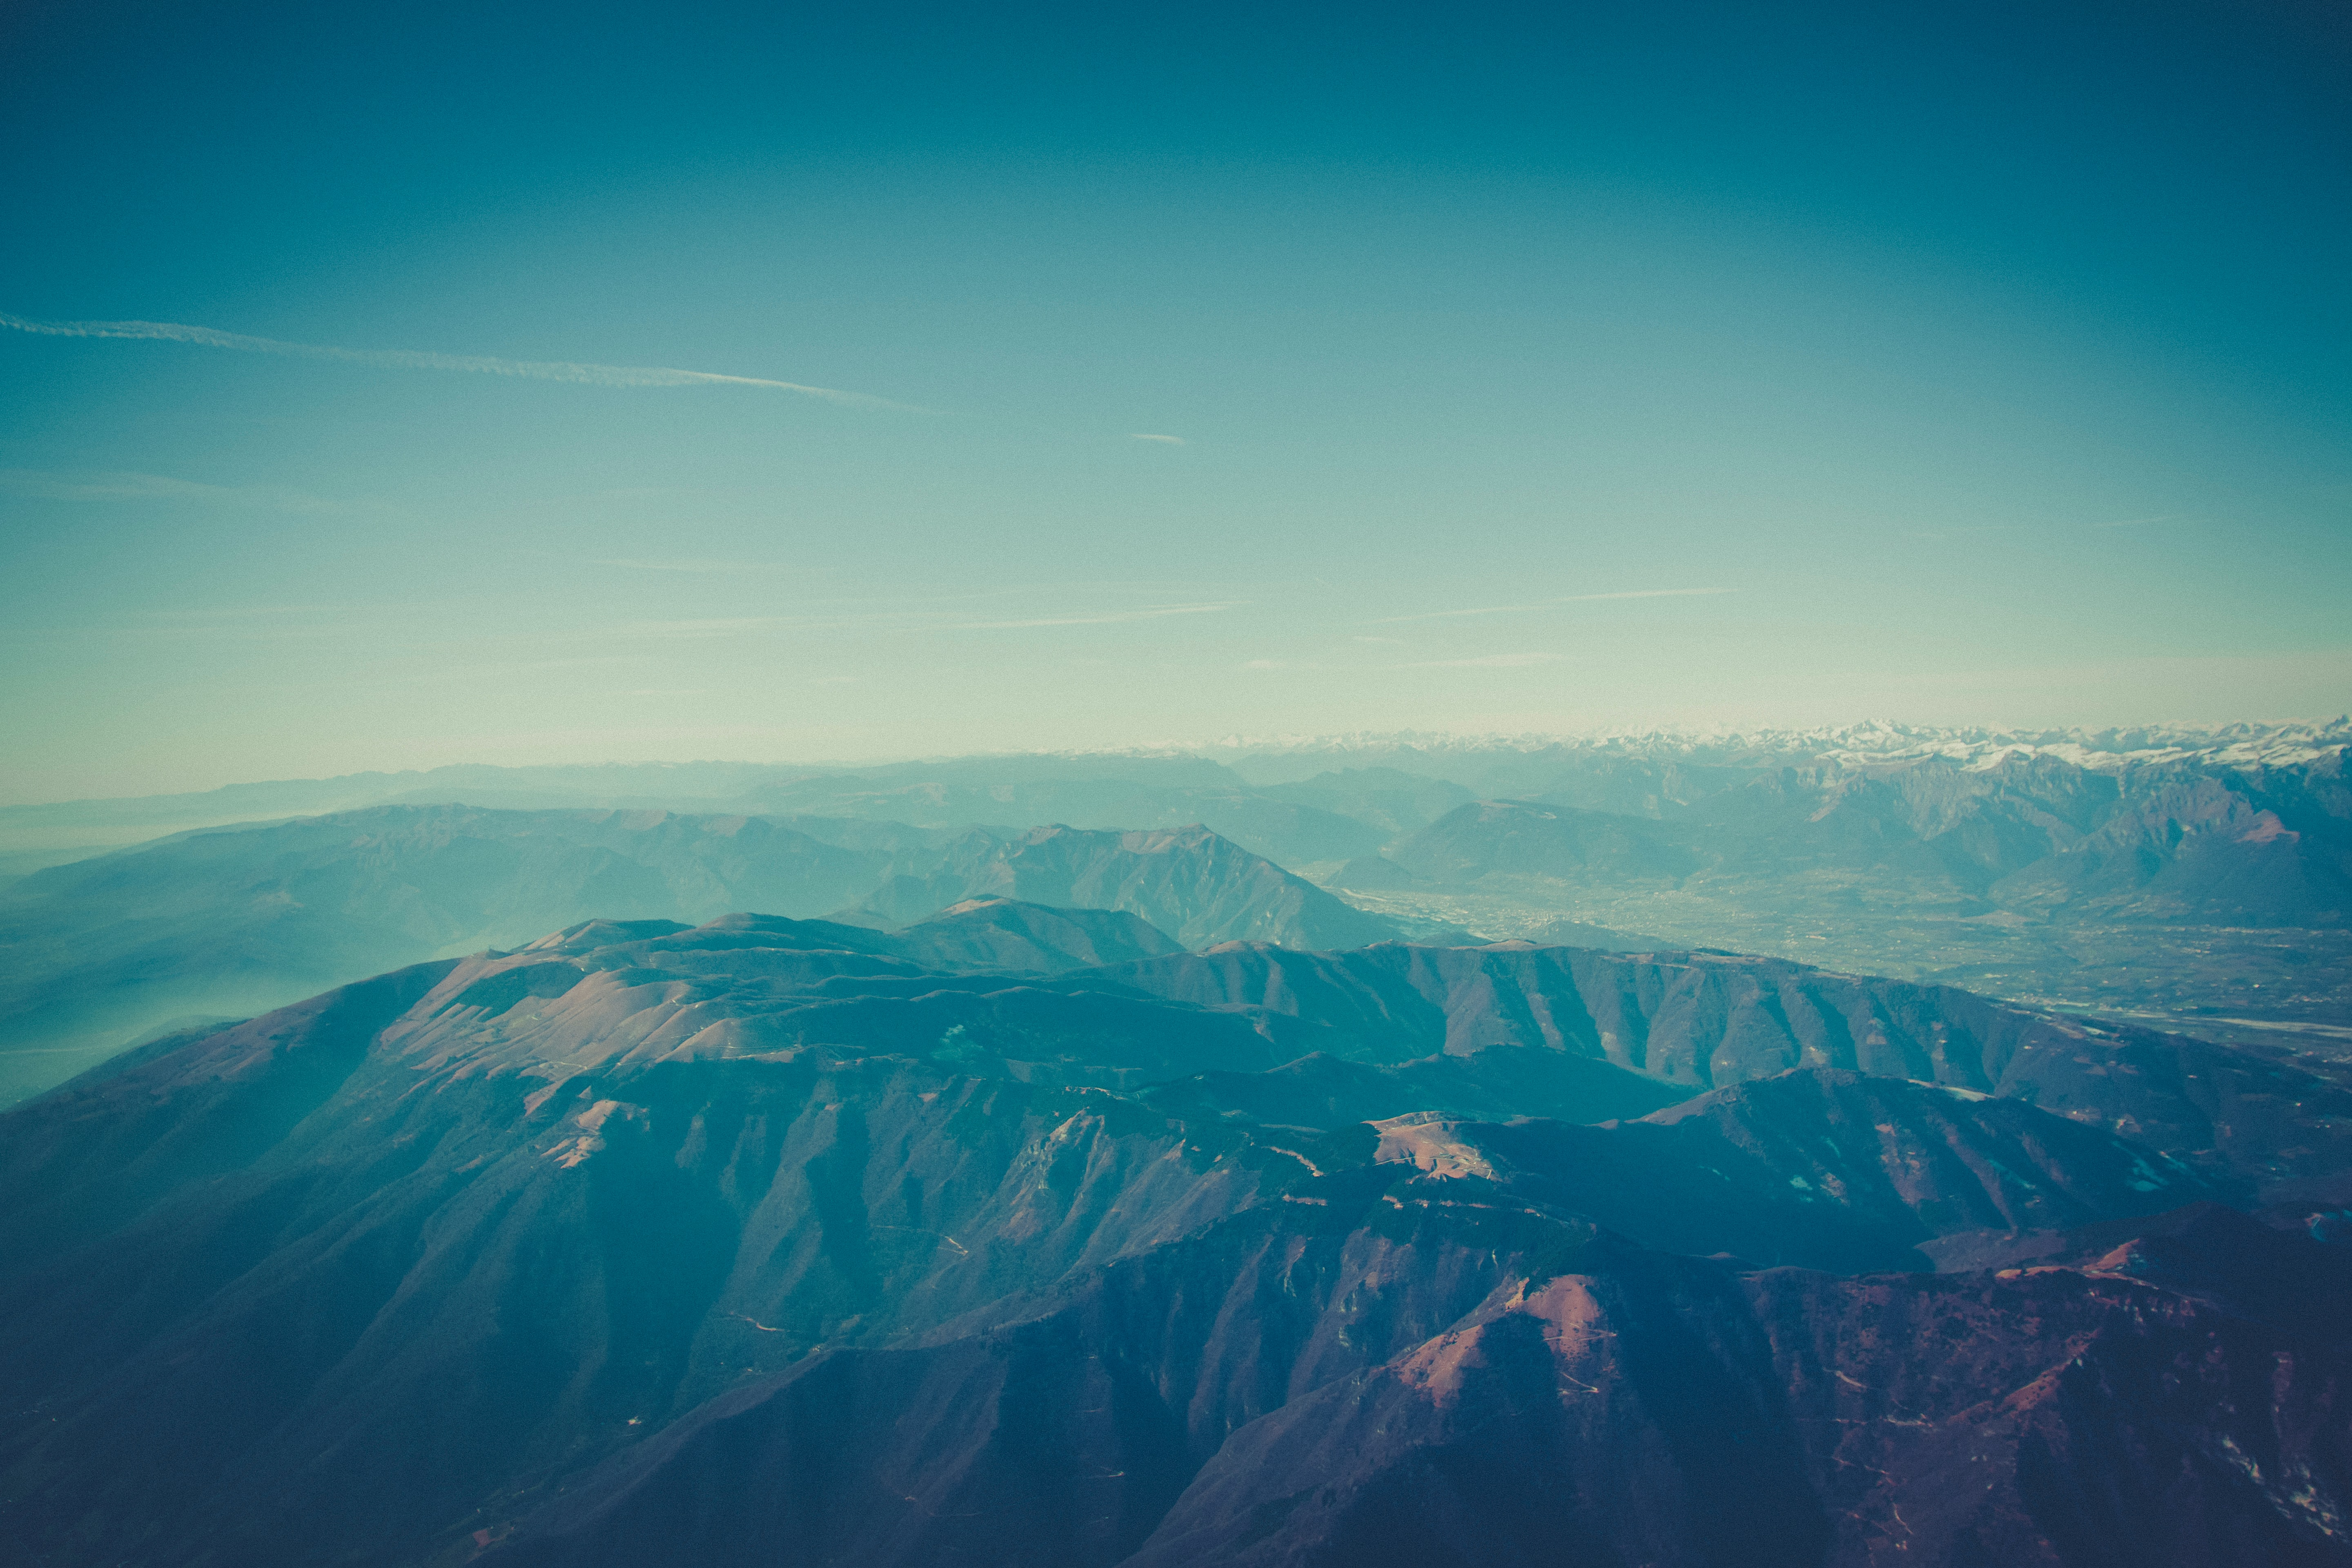 An aerial shot of an expanse of hazy blue mountains